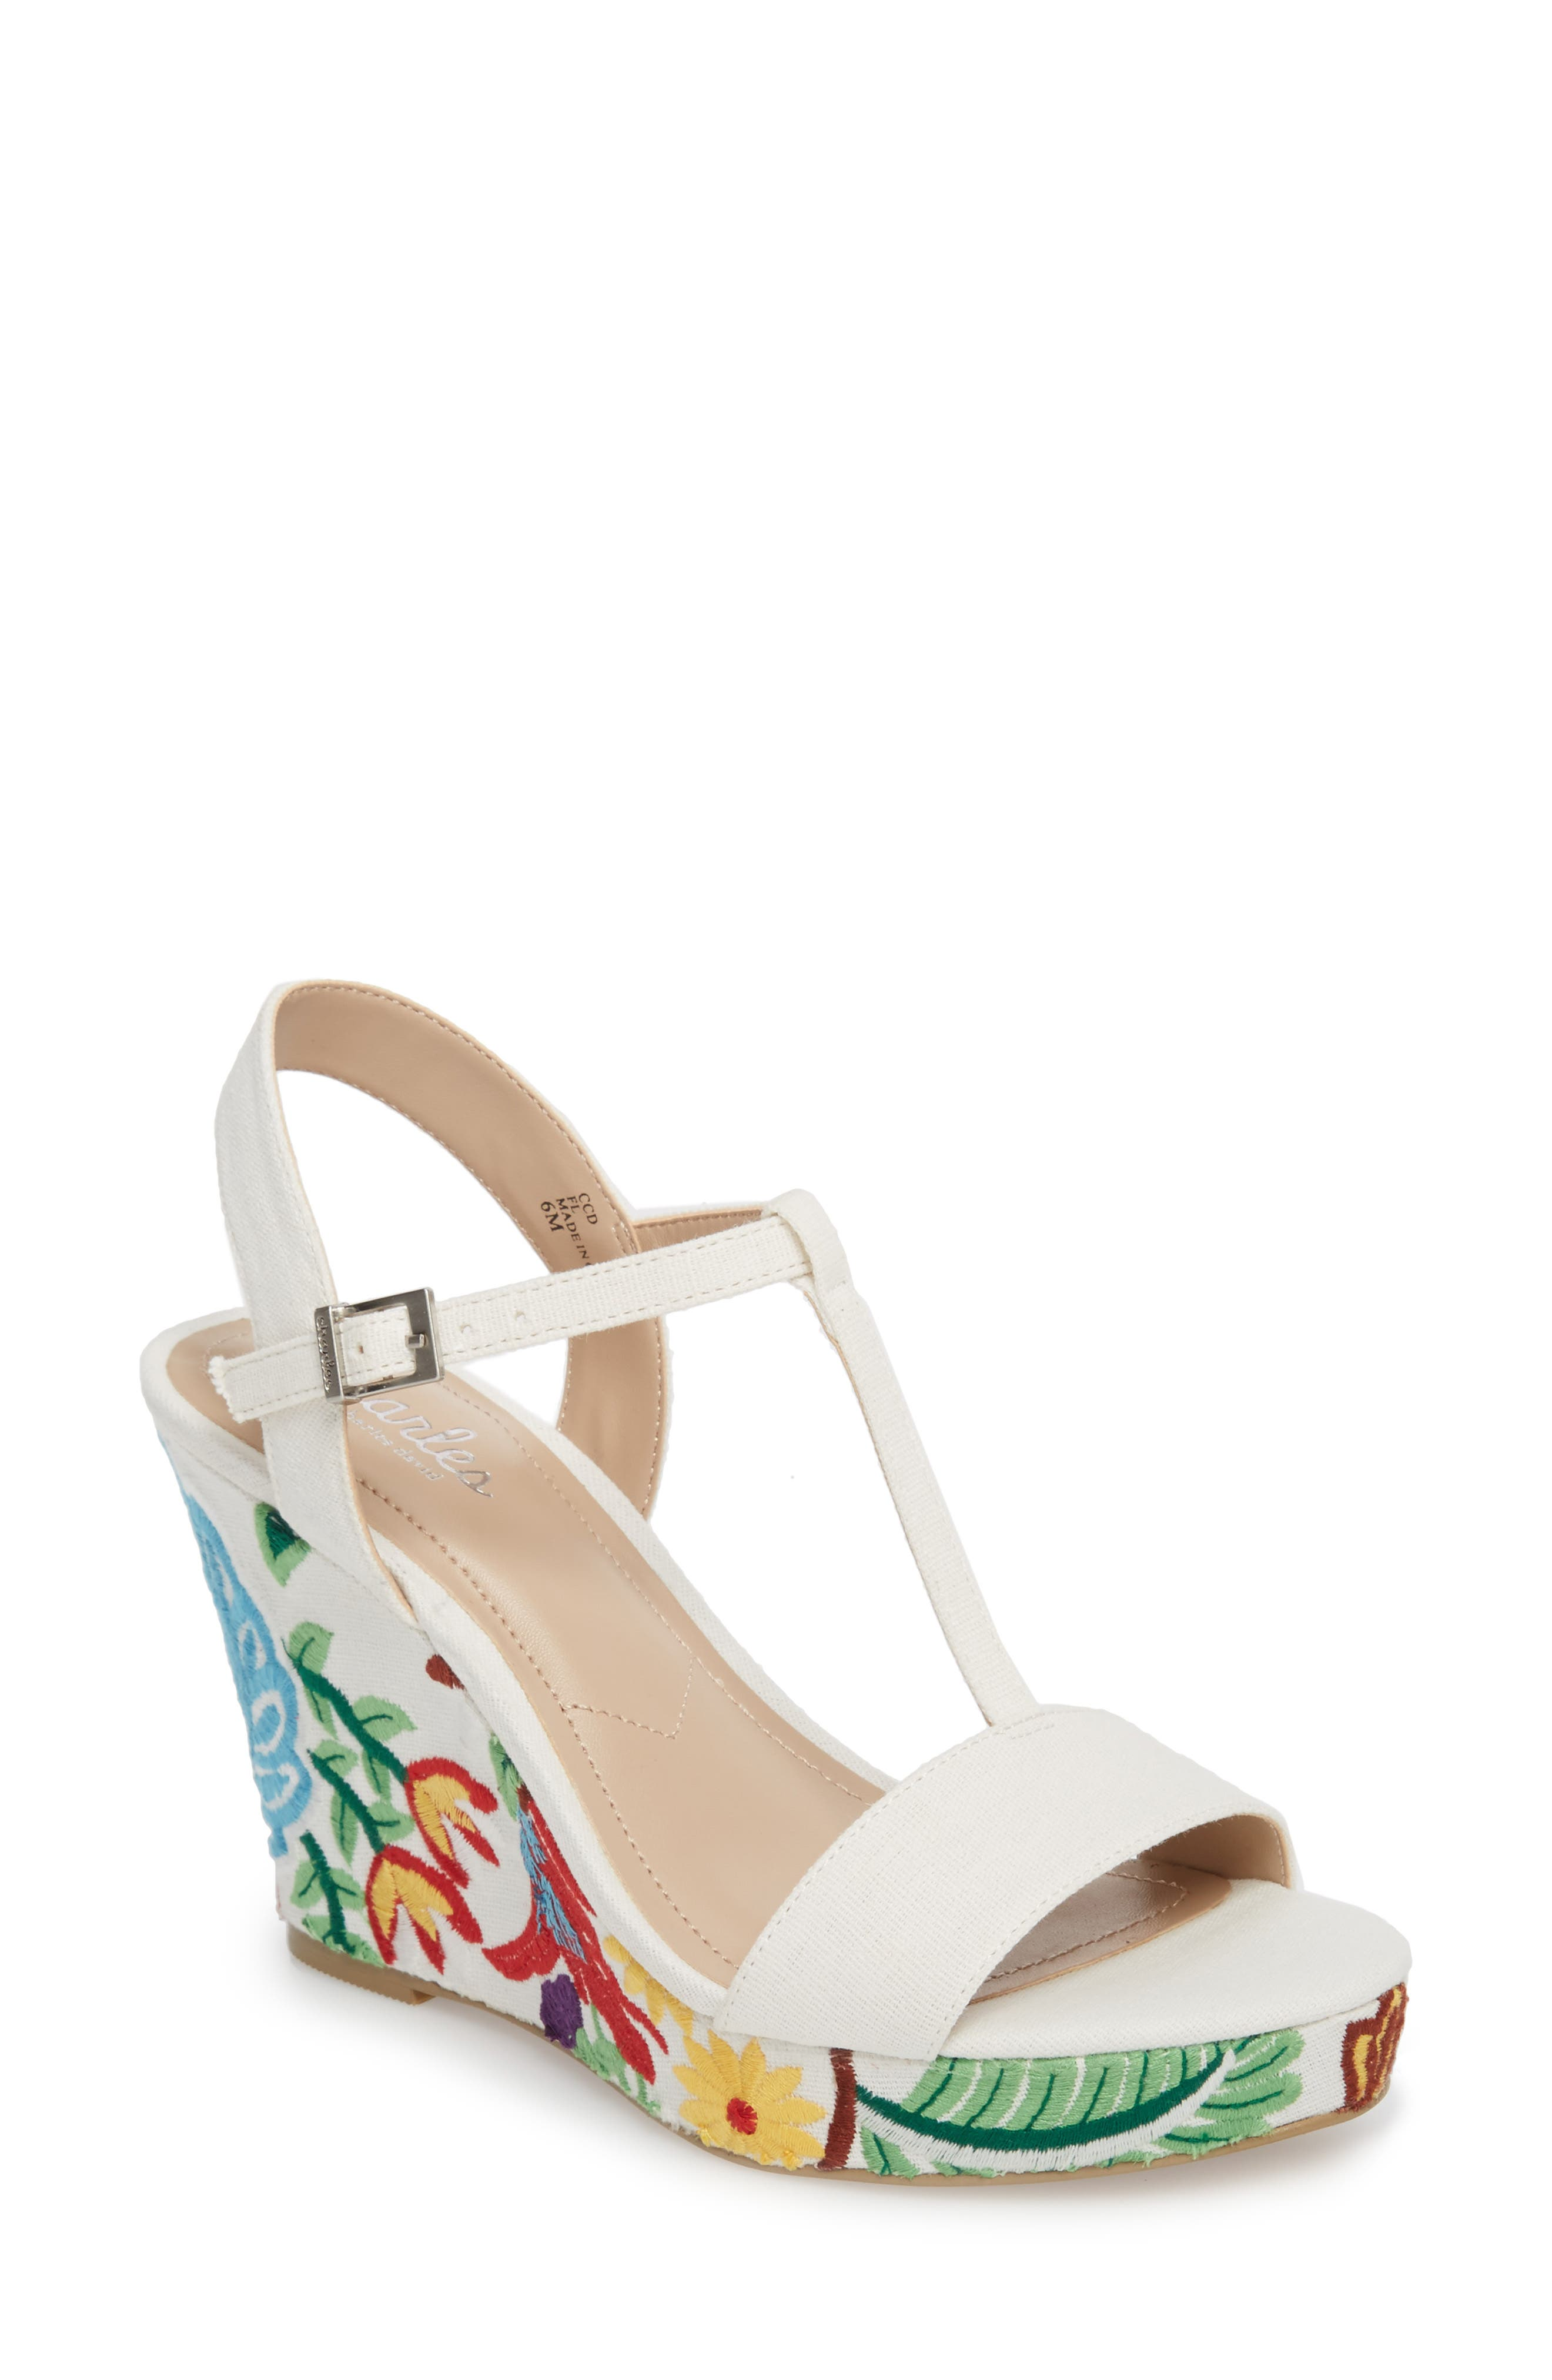 Women's Off-White Wedge Sandals | Nordstrom